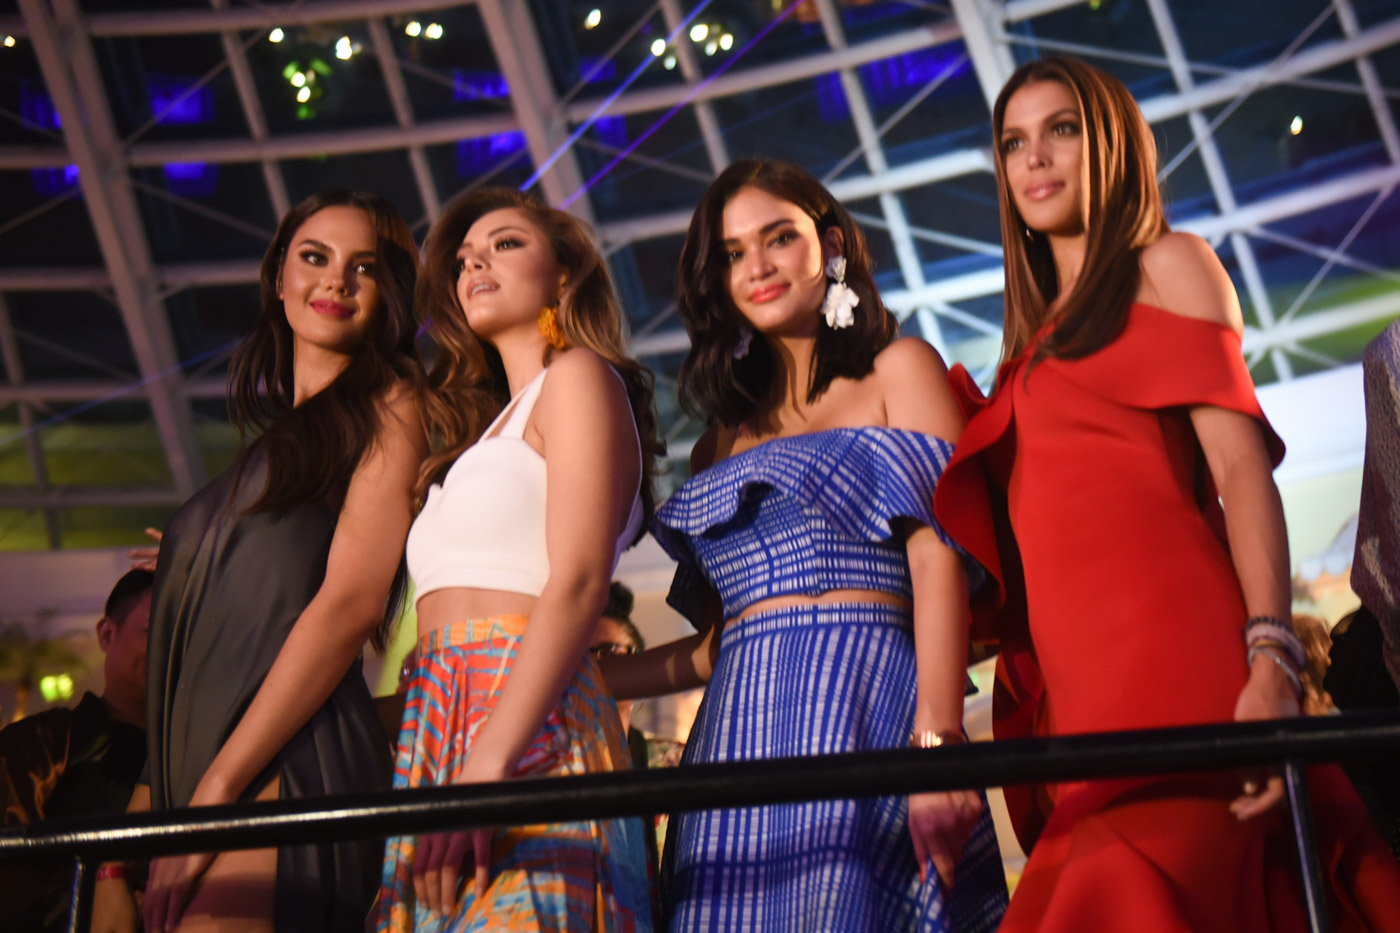 NEXT IN LINE? Will Catriona Gray join the Miss Universe line of winners soon?